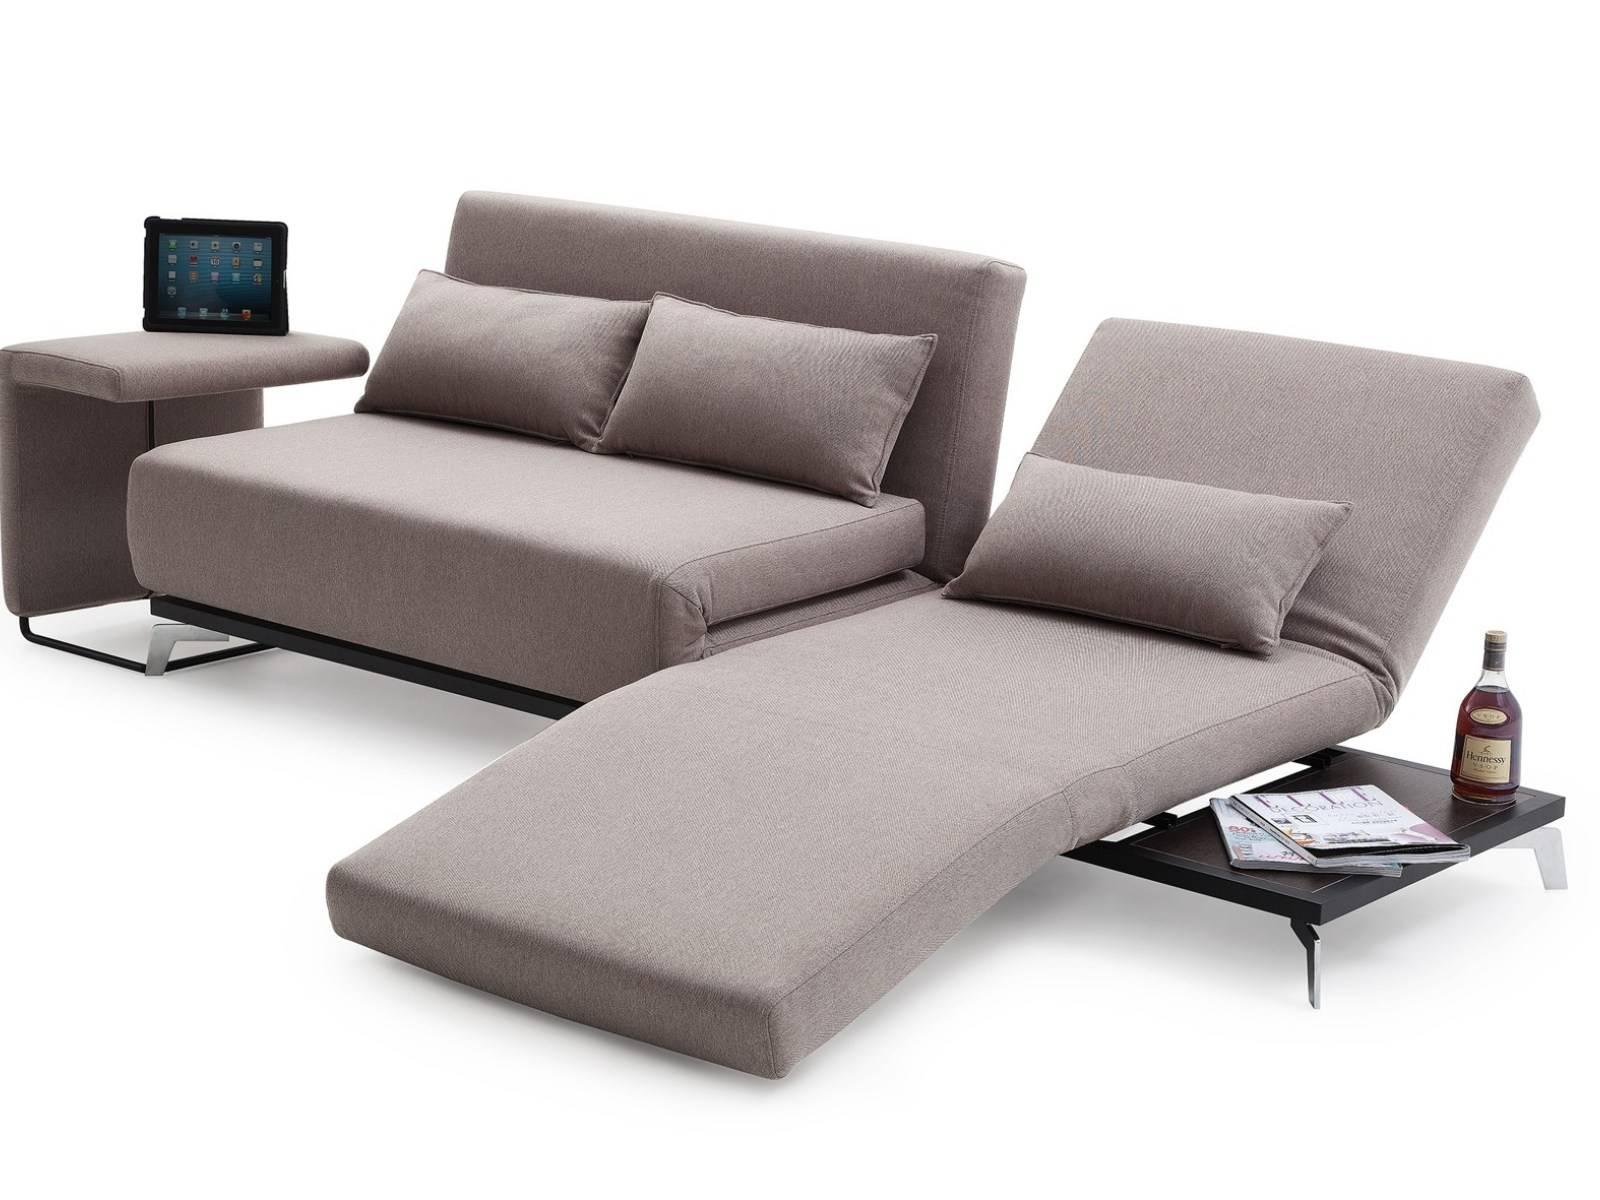 ▻ Sofa : 4 Lovely Sofa Bed Furniture Modern Sofa Beds Lovely Pertaining To Sofa Bed Chairs (View 30 of 30)